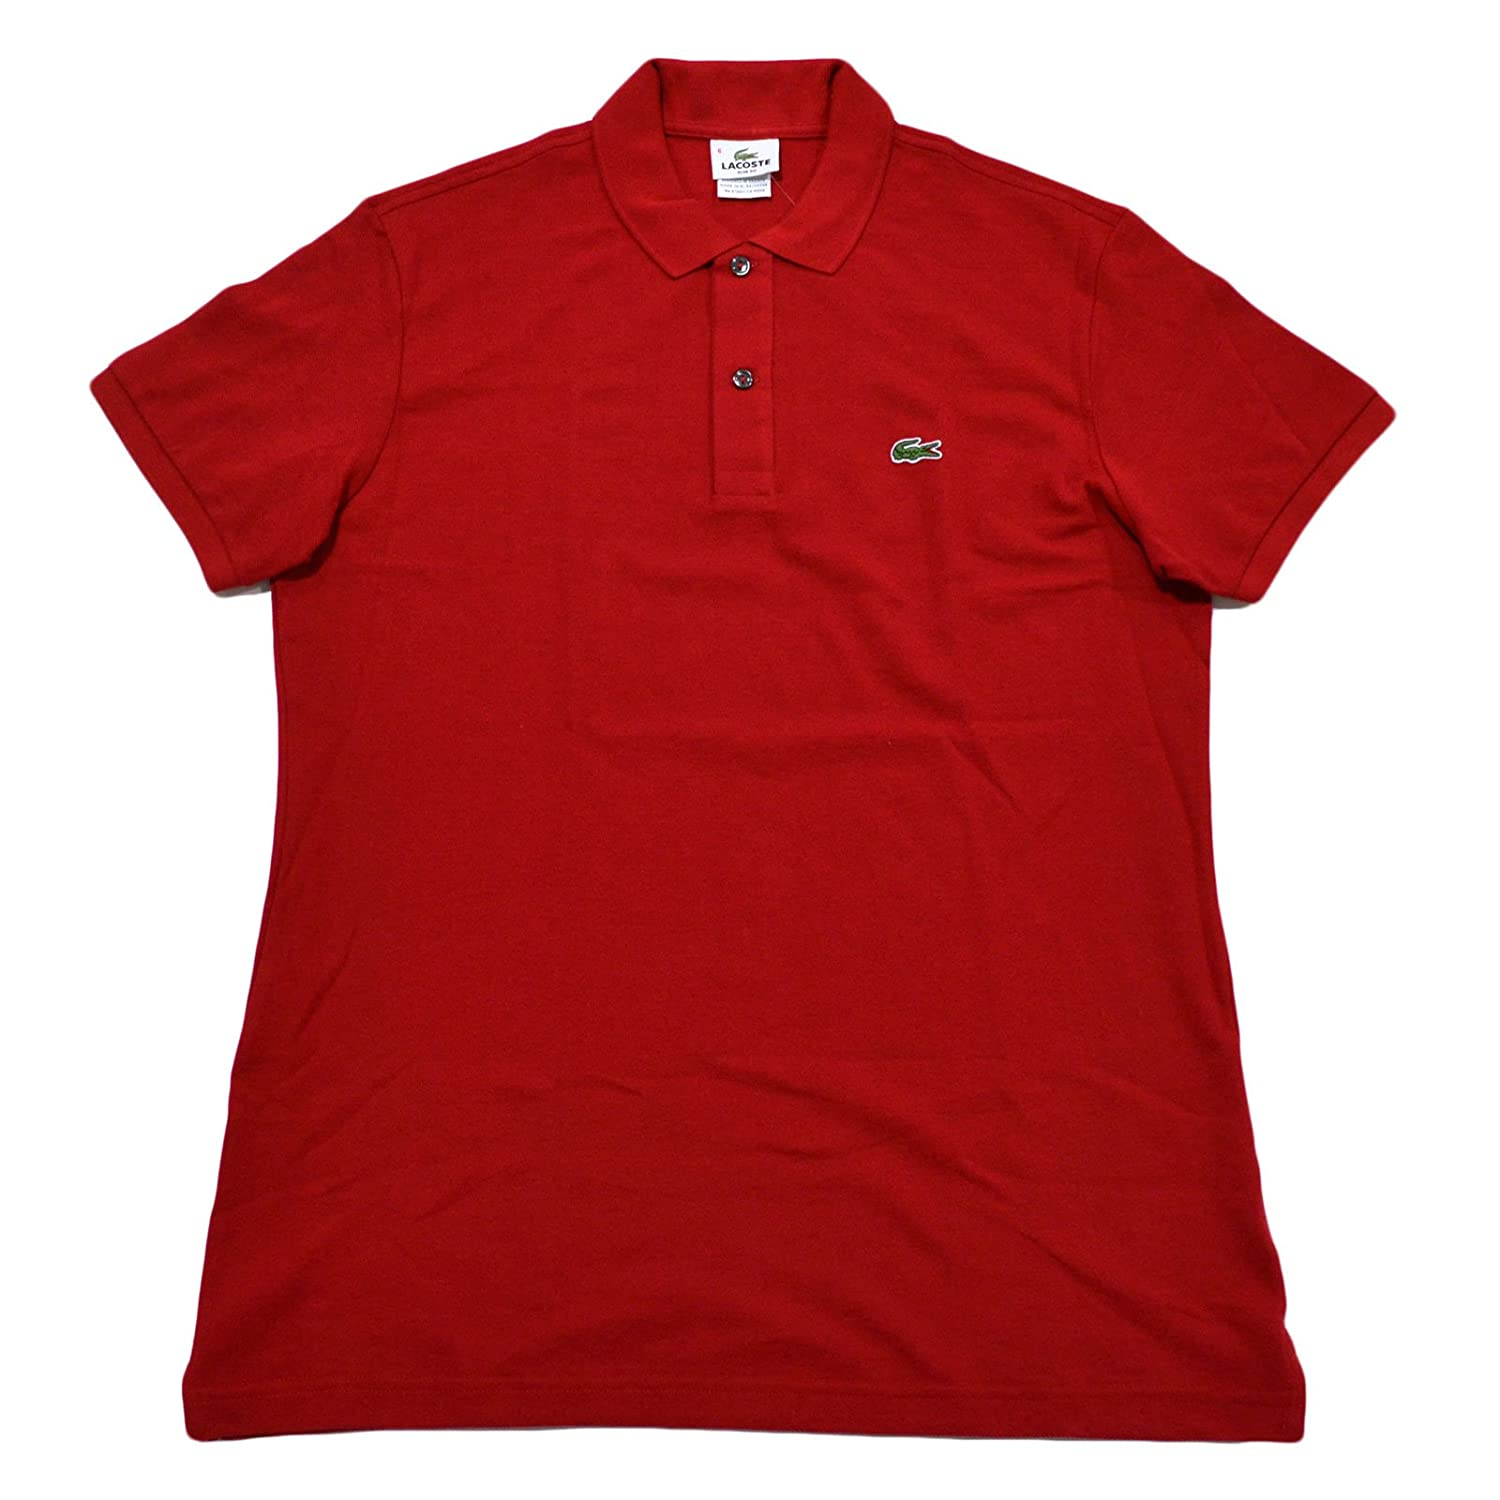 Lacoste Mens Slim Fit Mesh Polo Shirt Tokyo Red X Large Eur 7